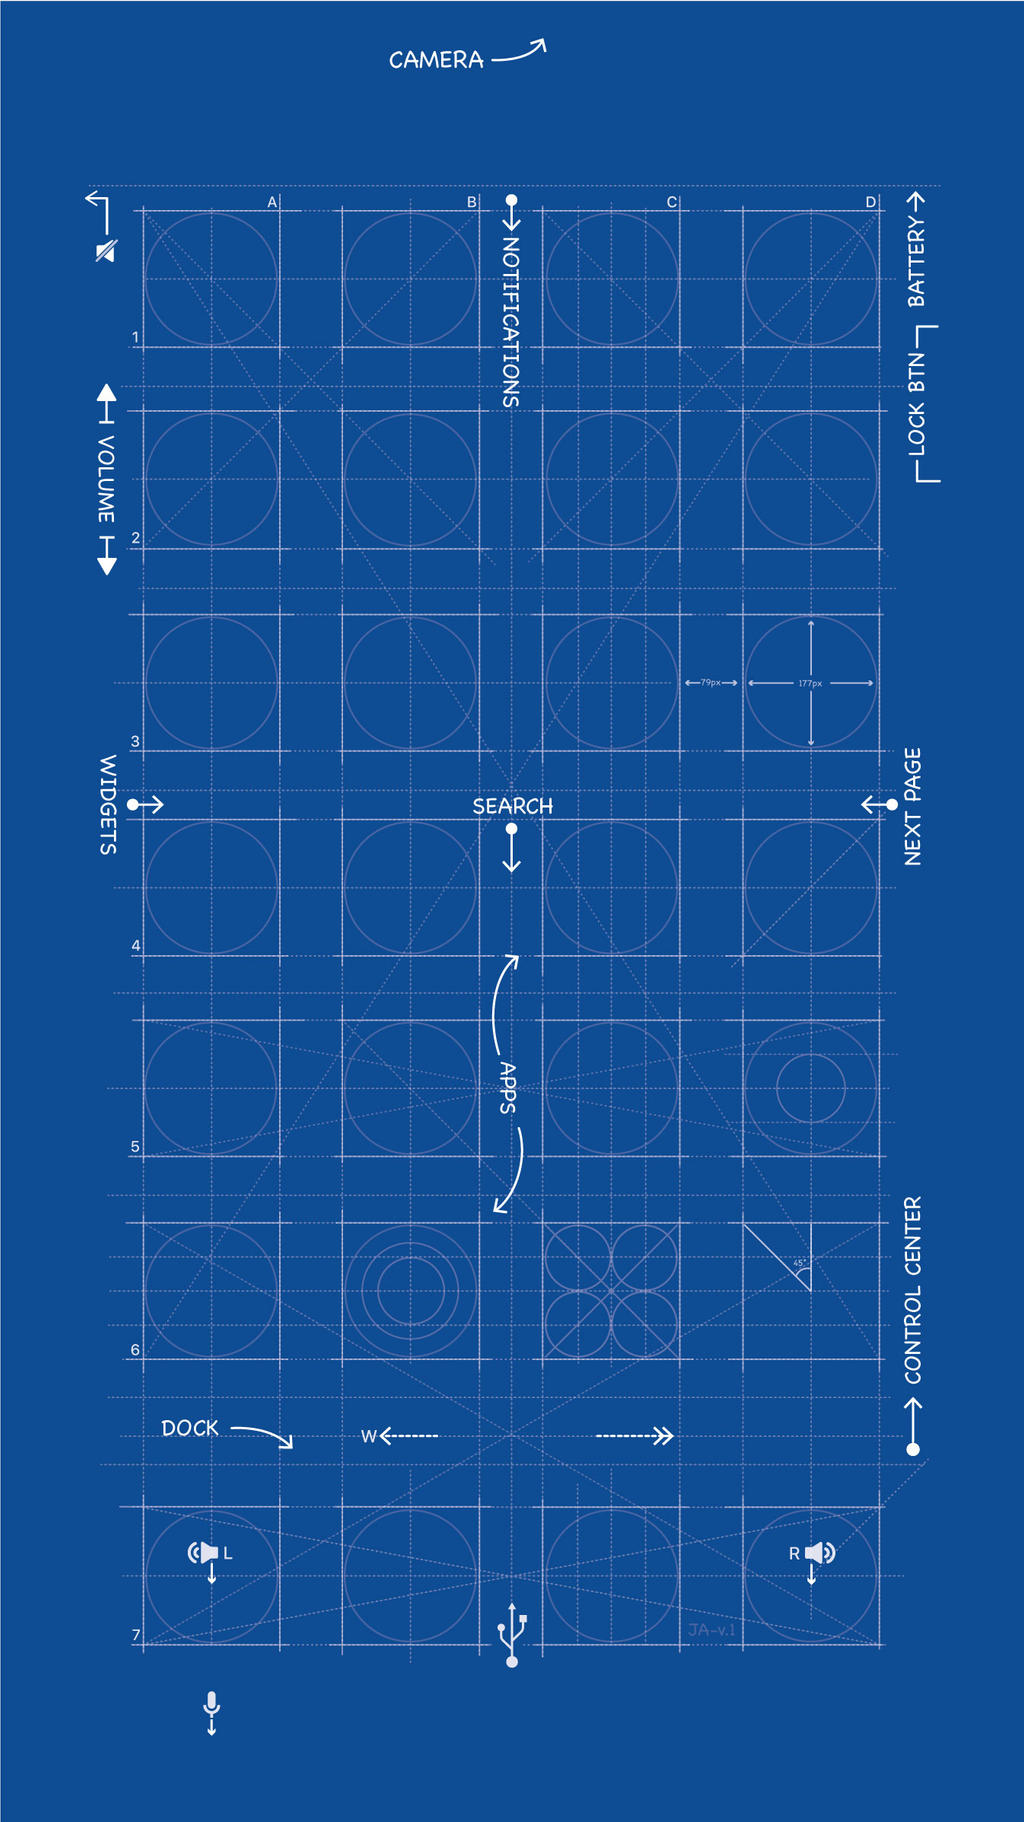 Iphone 6 8 Blueprint Wallpaper By Mrdude42 On Deviantart